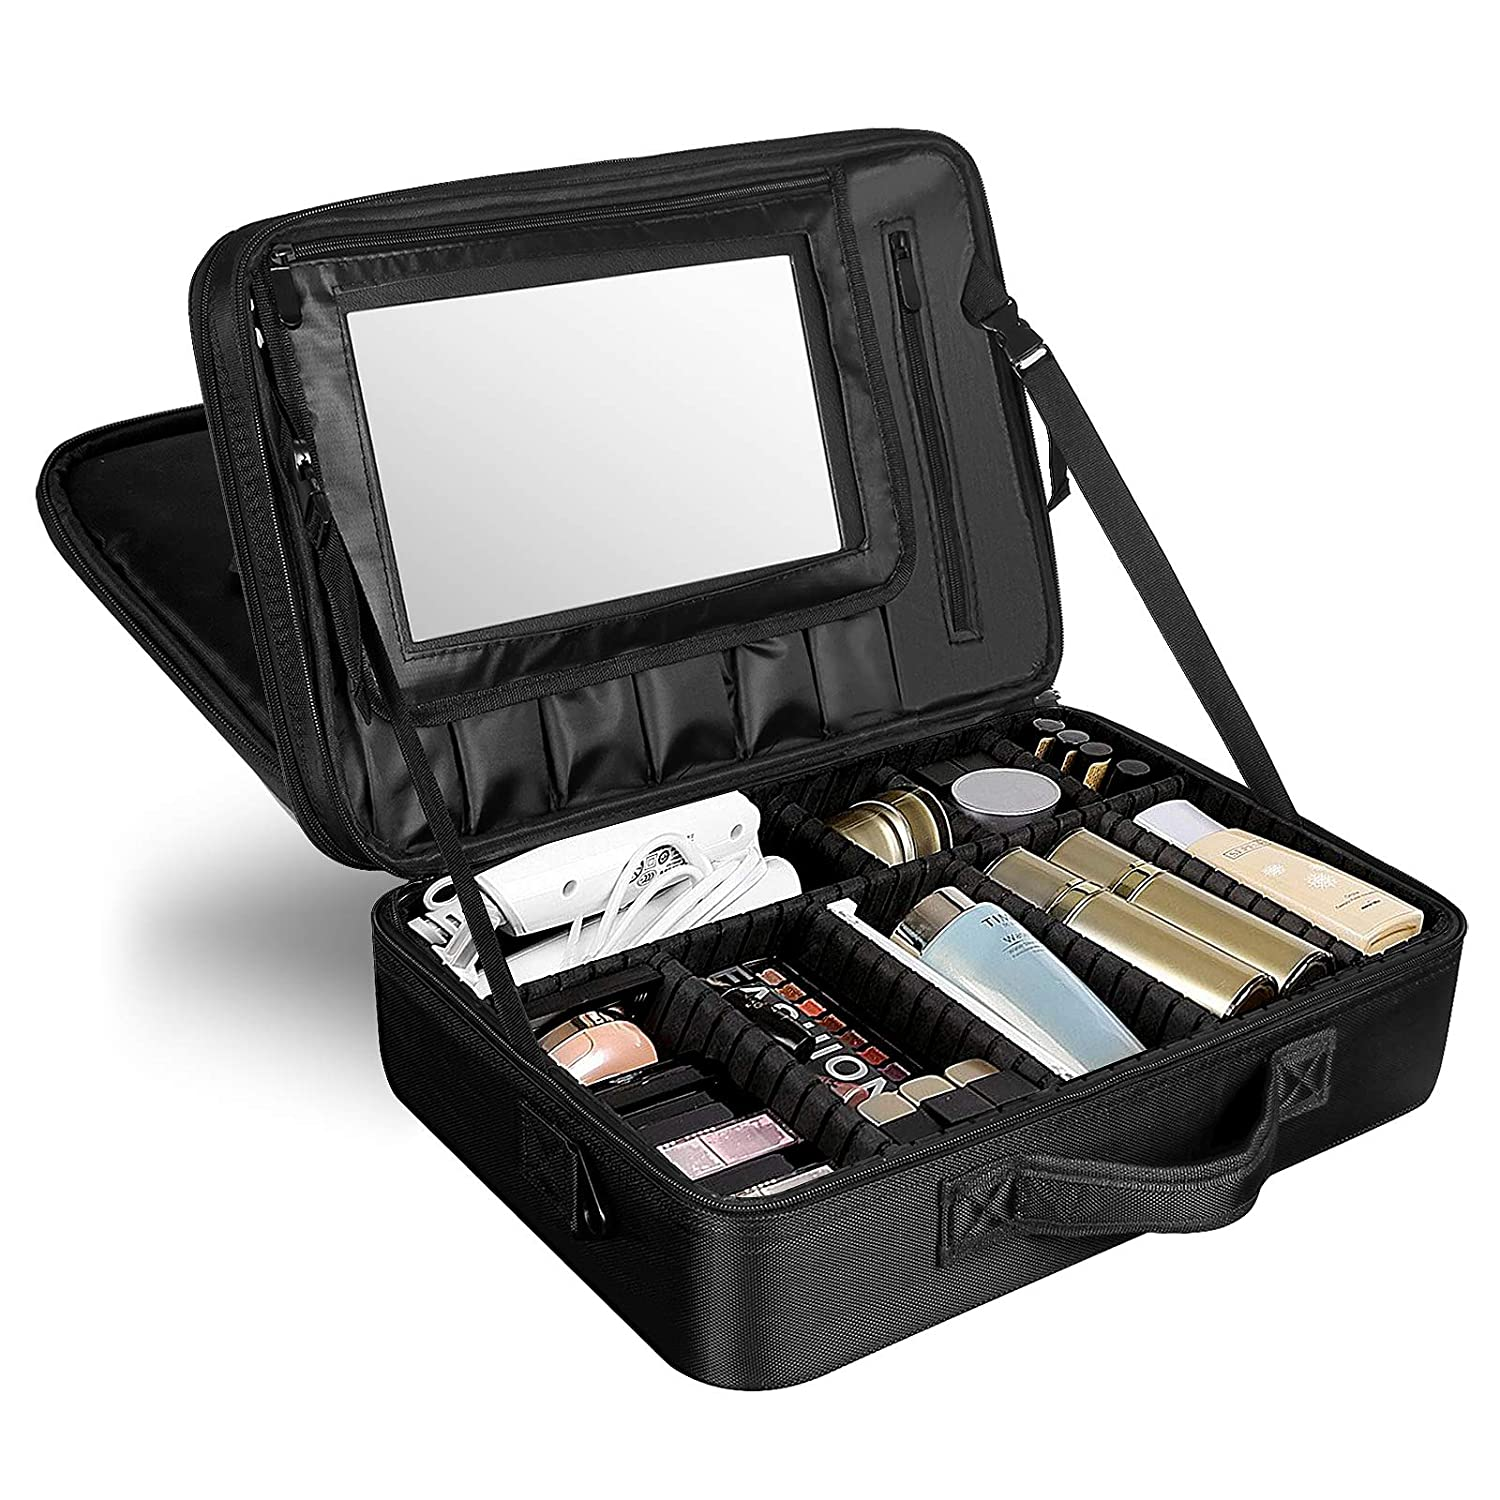 "Solofish 17.1"" Makeup Train Case Triple Layer Professional Cosmetic and Beauty Tools Storage Box 17.1"" Extra Large Make Up Brush And Beauty Artist Organizer with Removable HD Mirror"